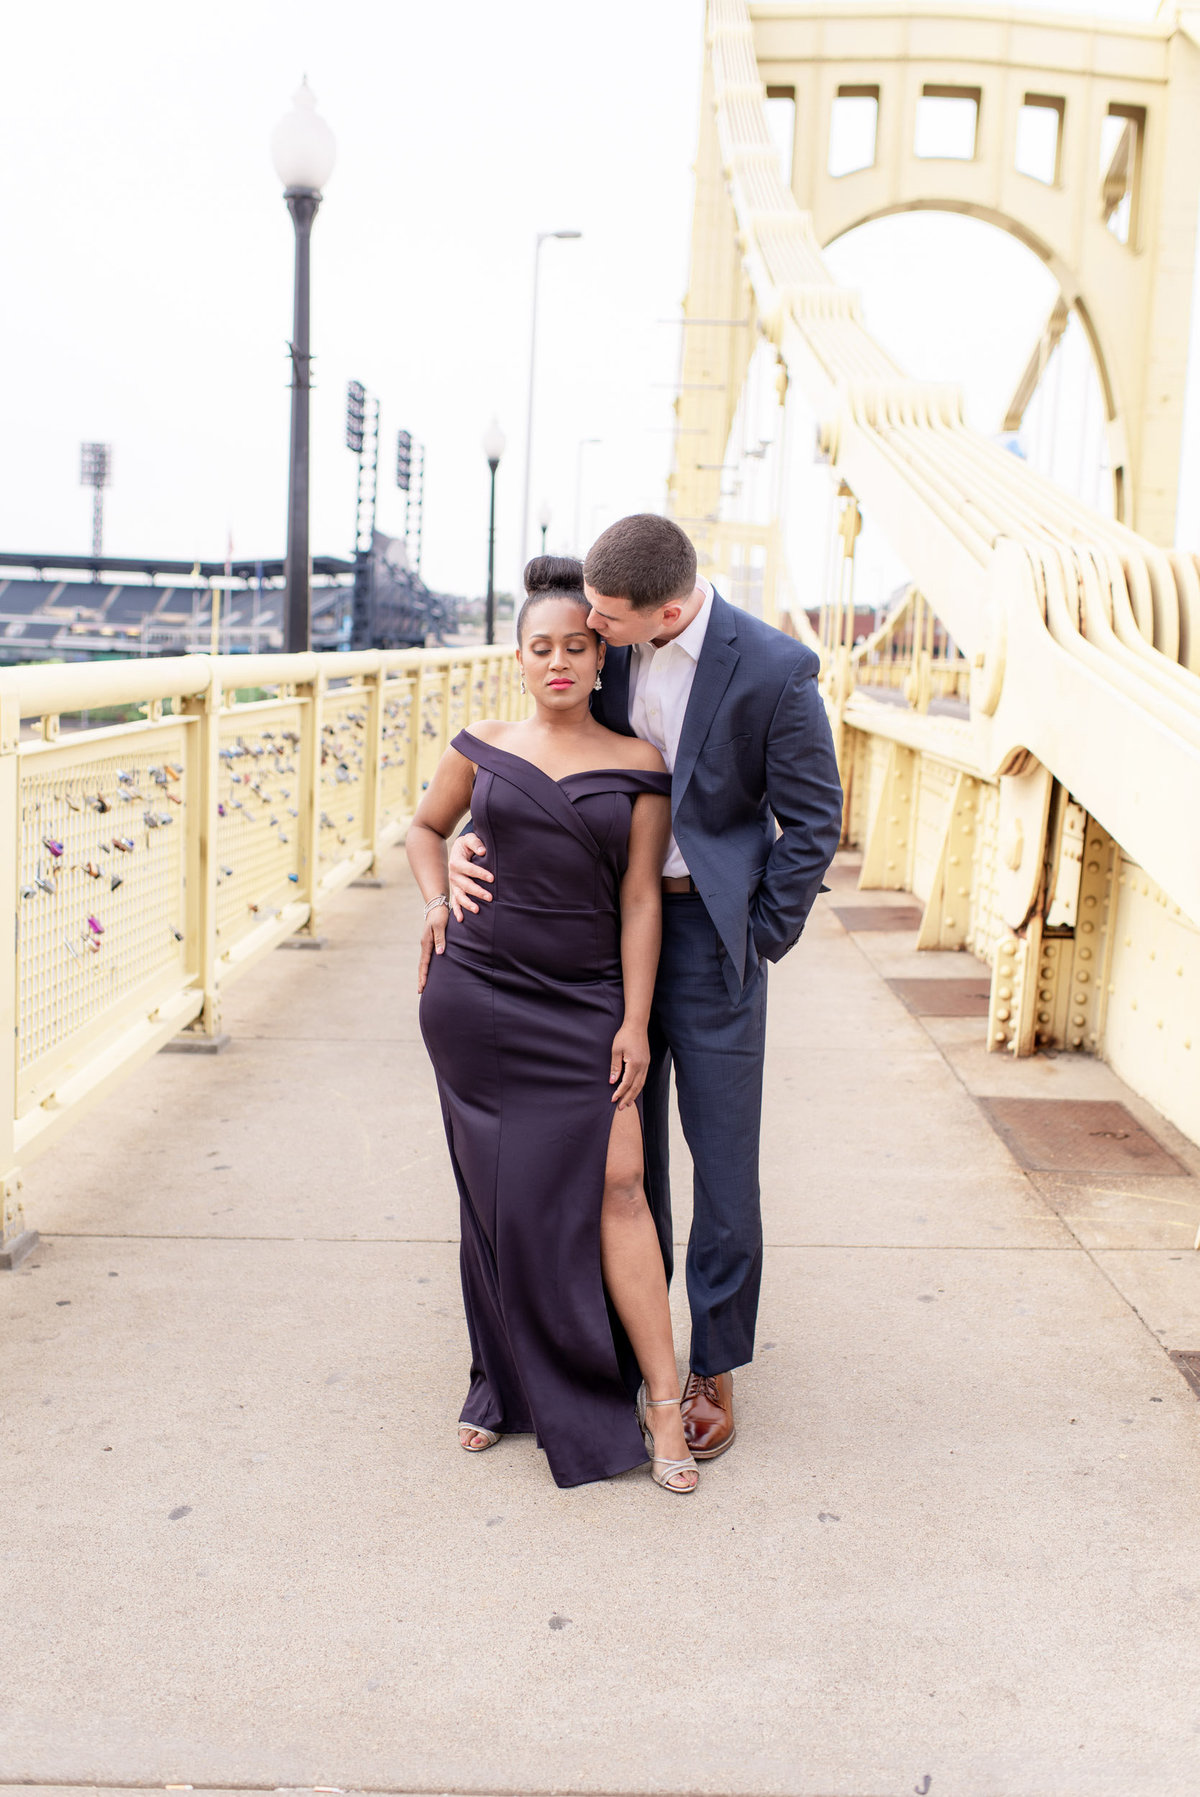 DowntownPittsburghPAWeddingEngagementPhotography2-3